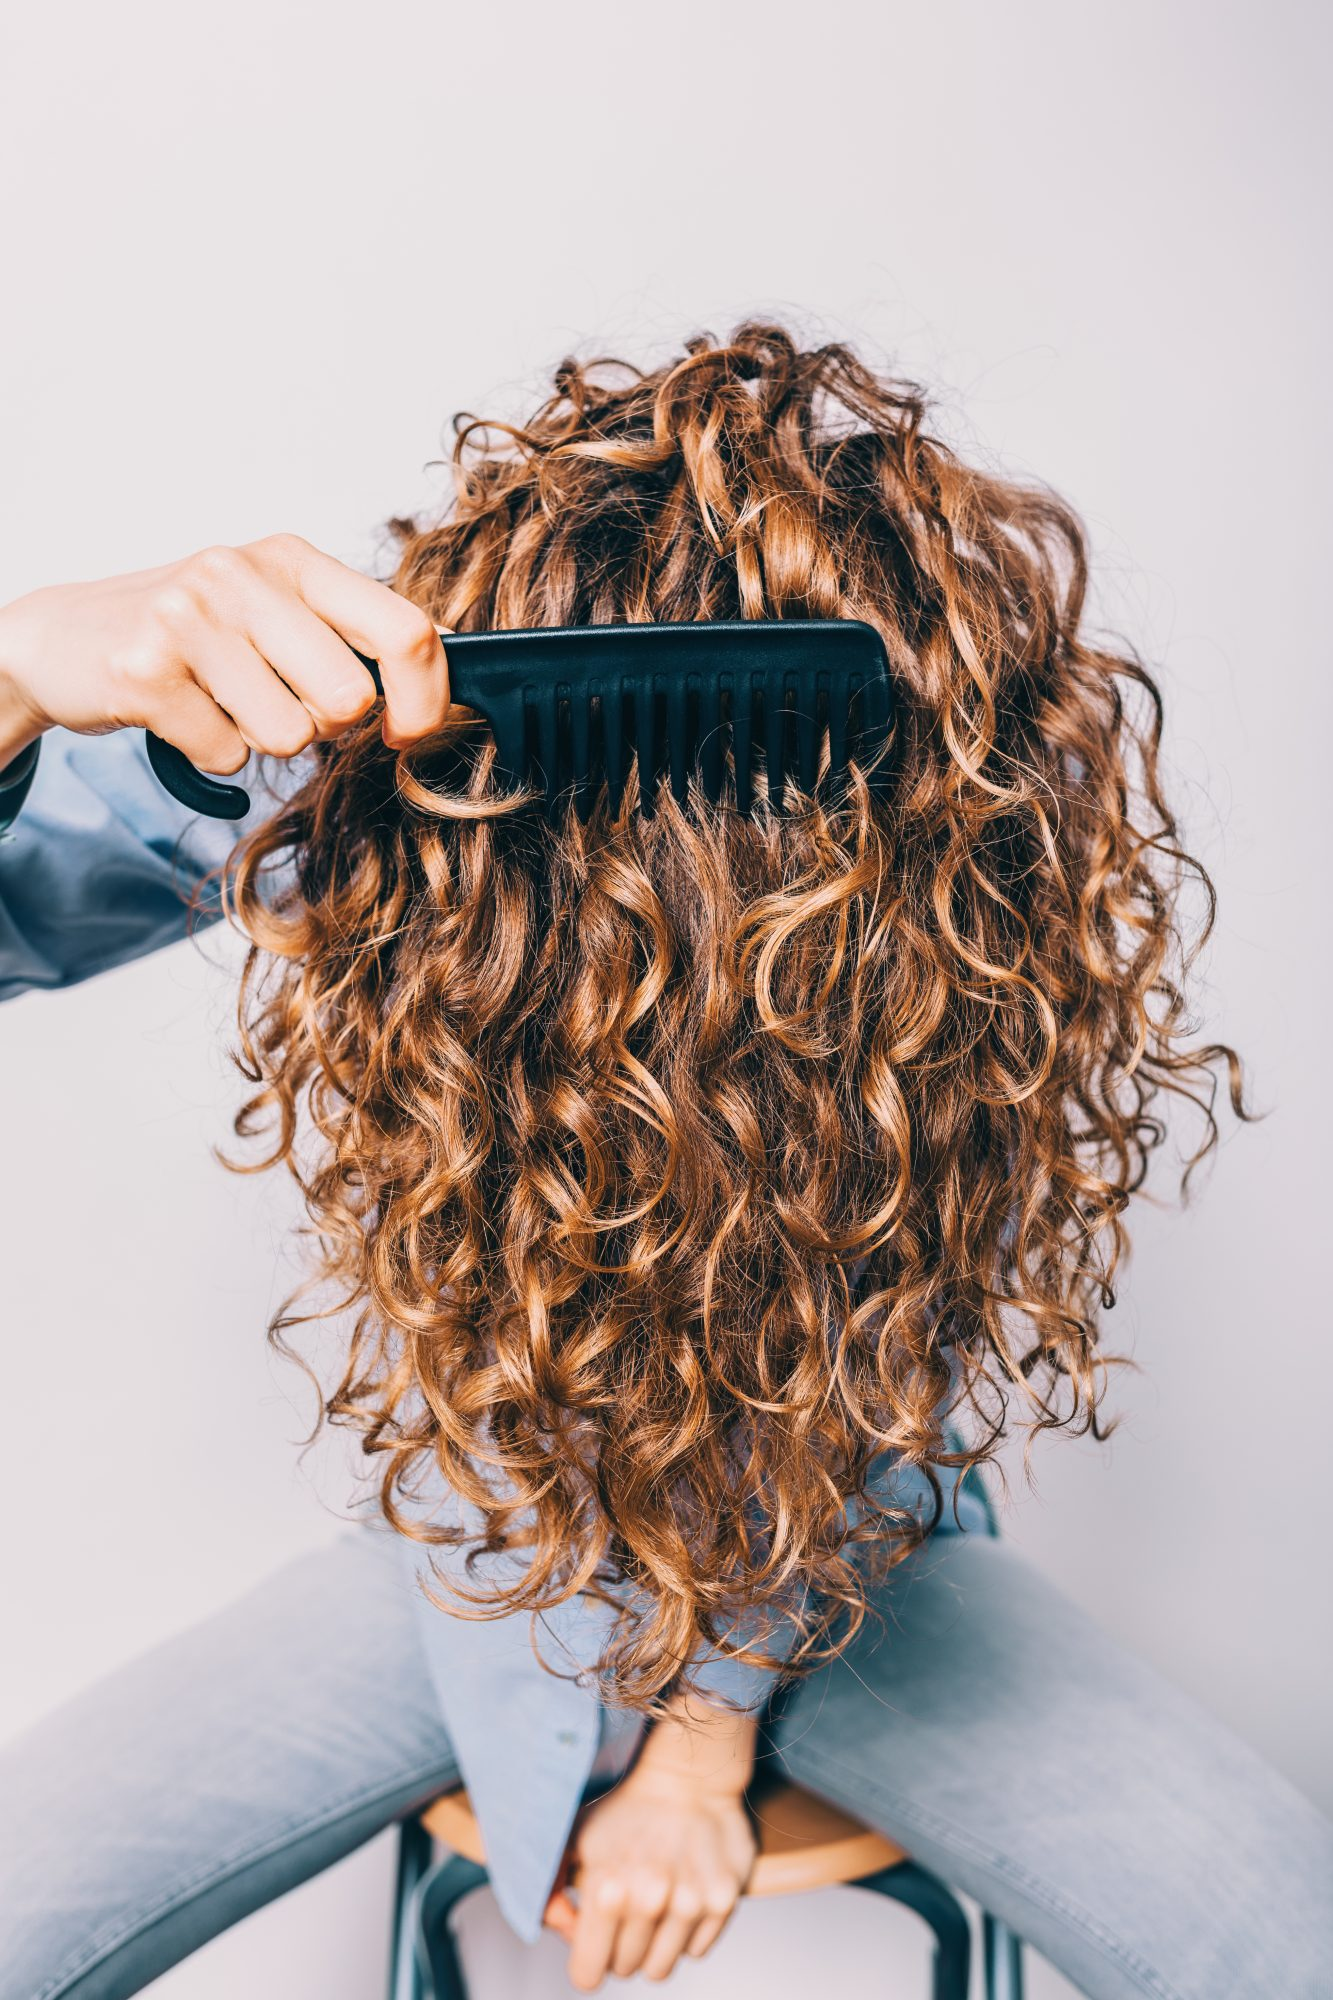 Curly Hair Guide: Understanding the Different Types of Curly Hair and the  Different Ways to Care for Them | Martha Stewart